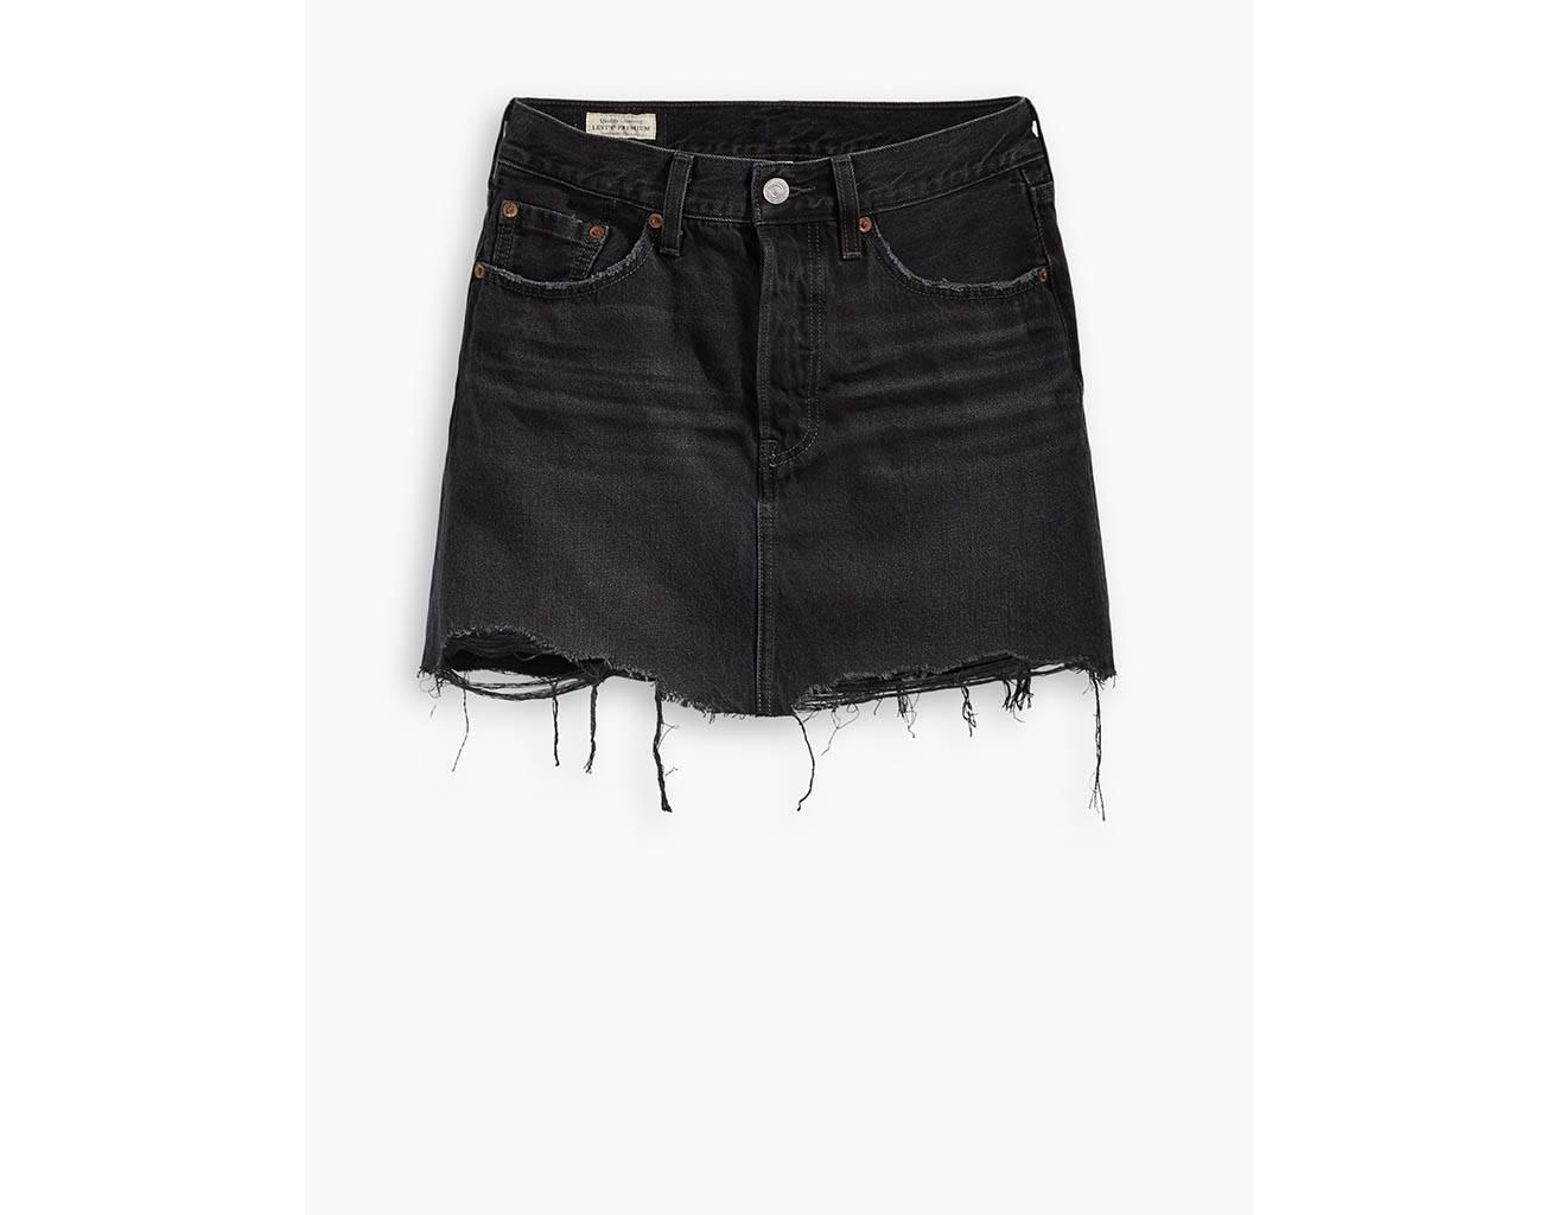 5790c6e12 Levi's Black Cotton Ill Fated Deconstructed Mini Skirt in Black - Lyst